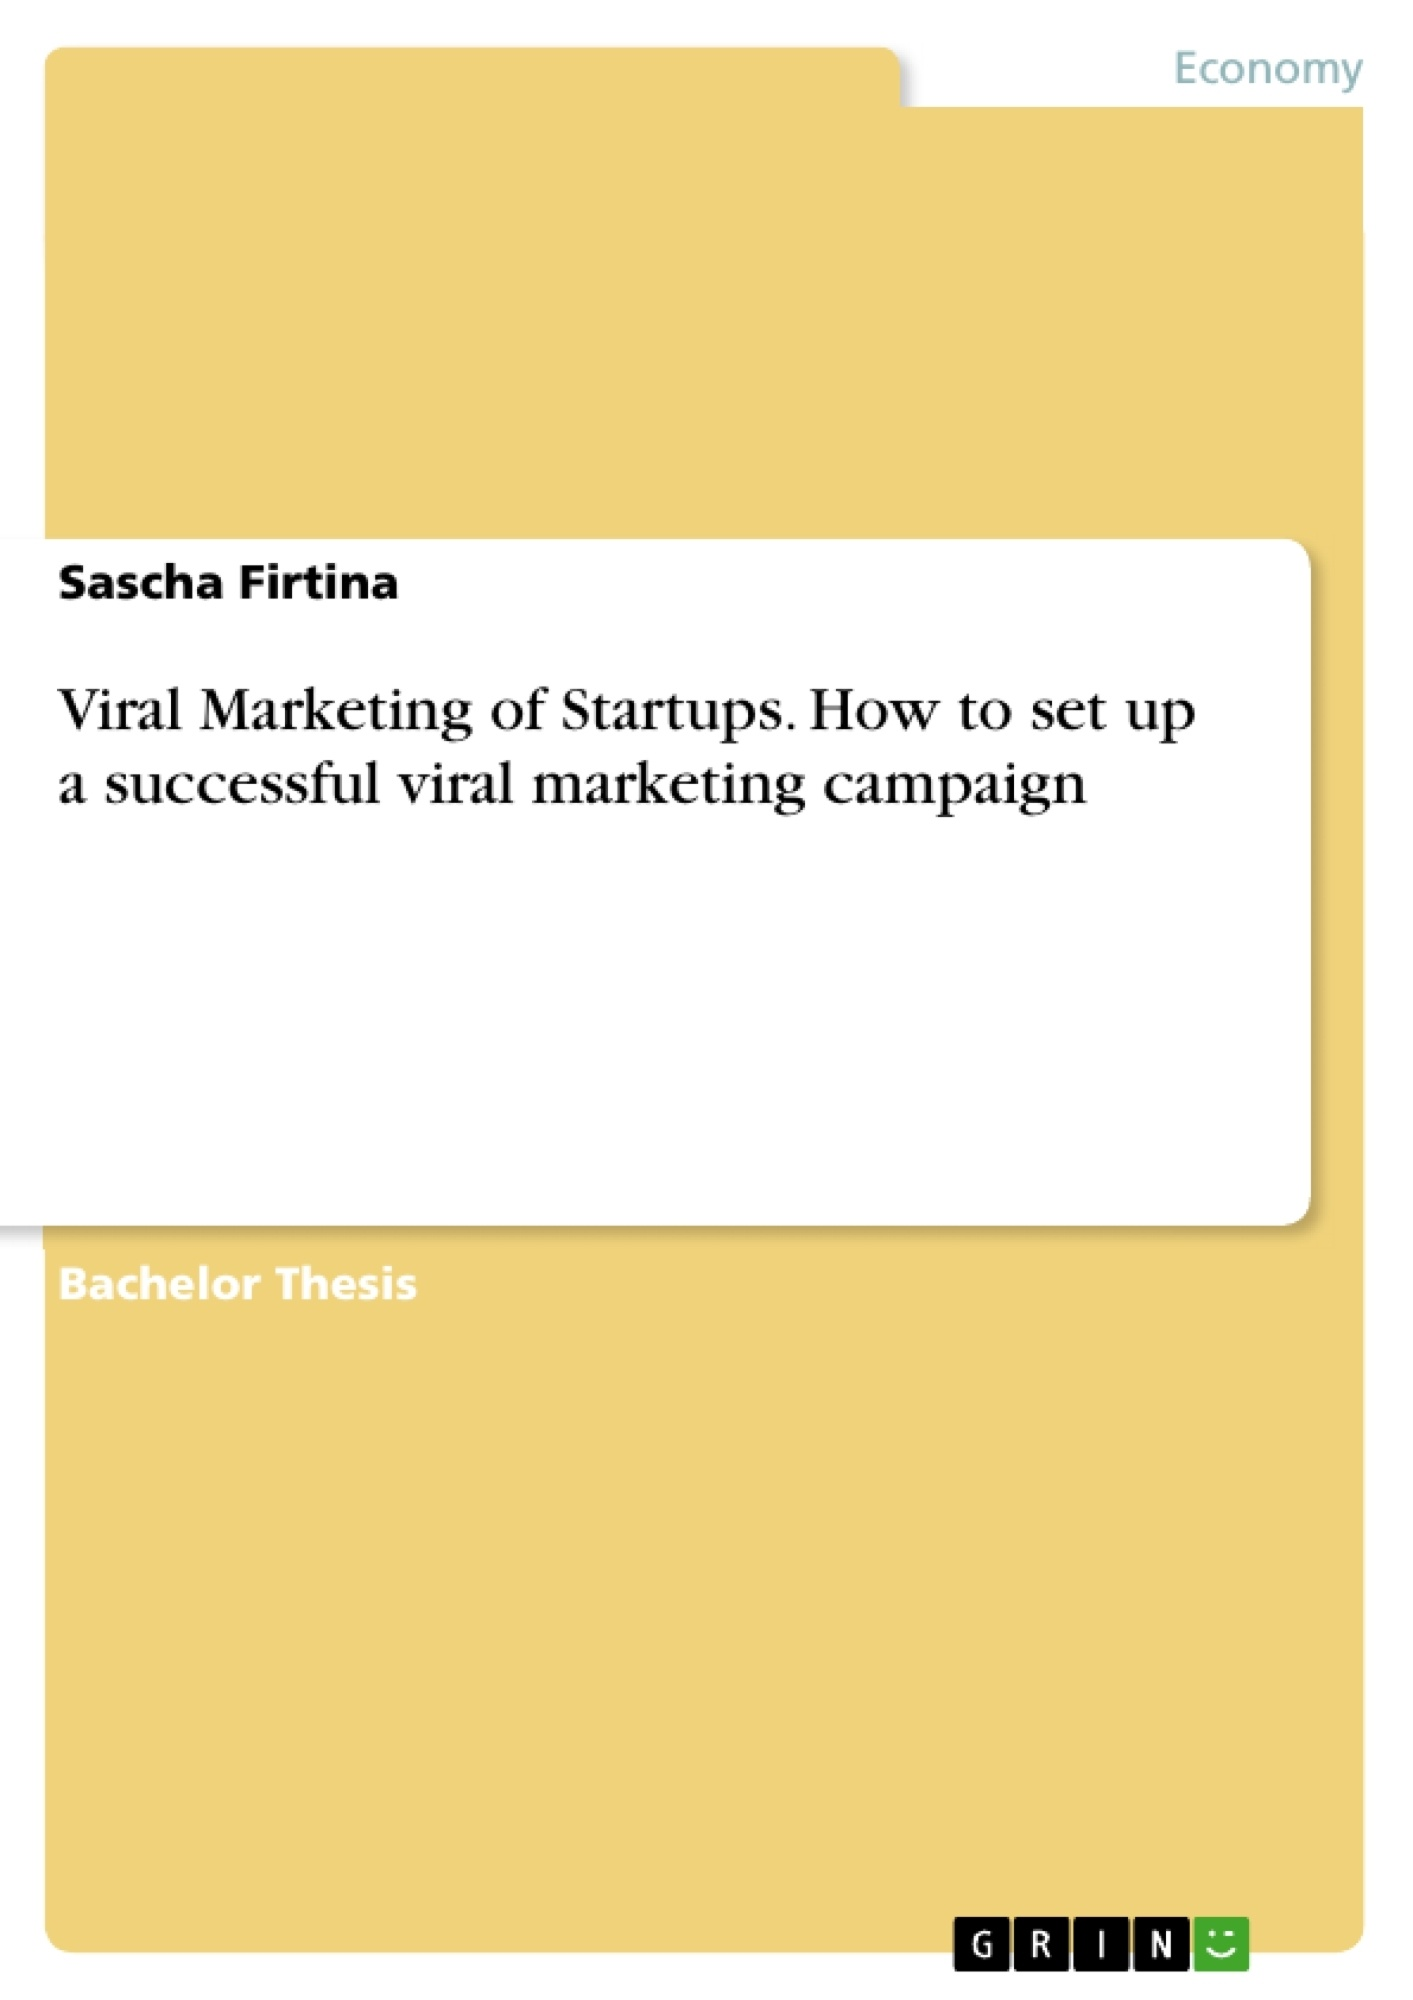 Title: Viral Marketing of Startups. How to set up a successful viral marketing campaign